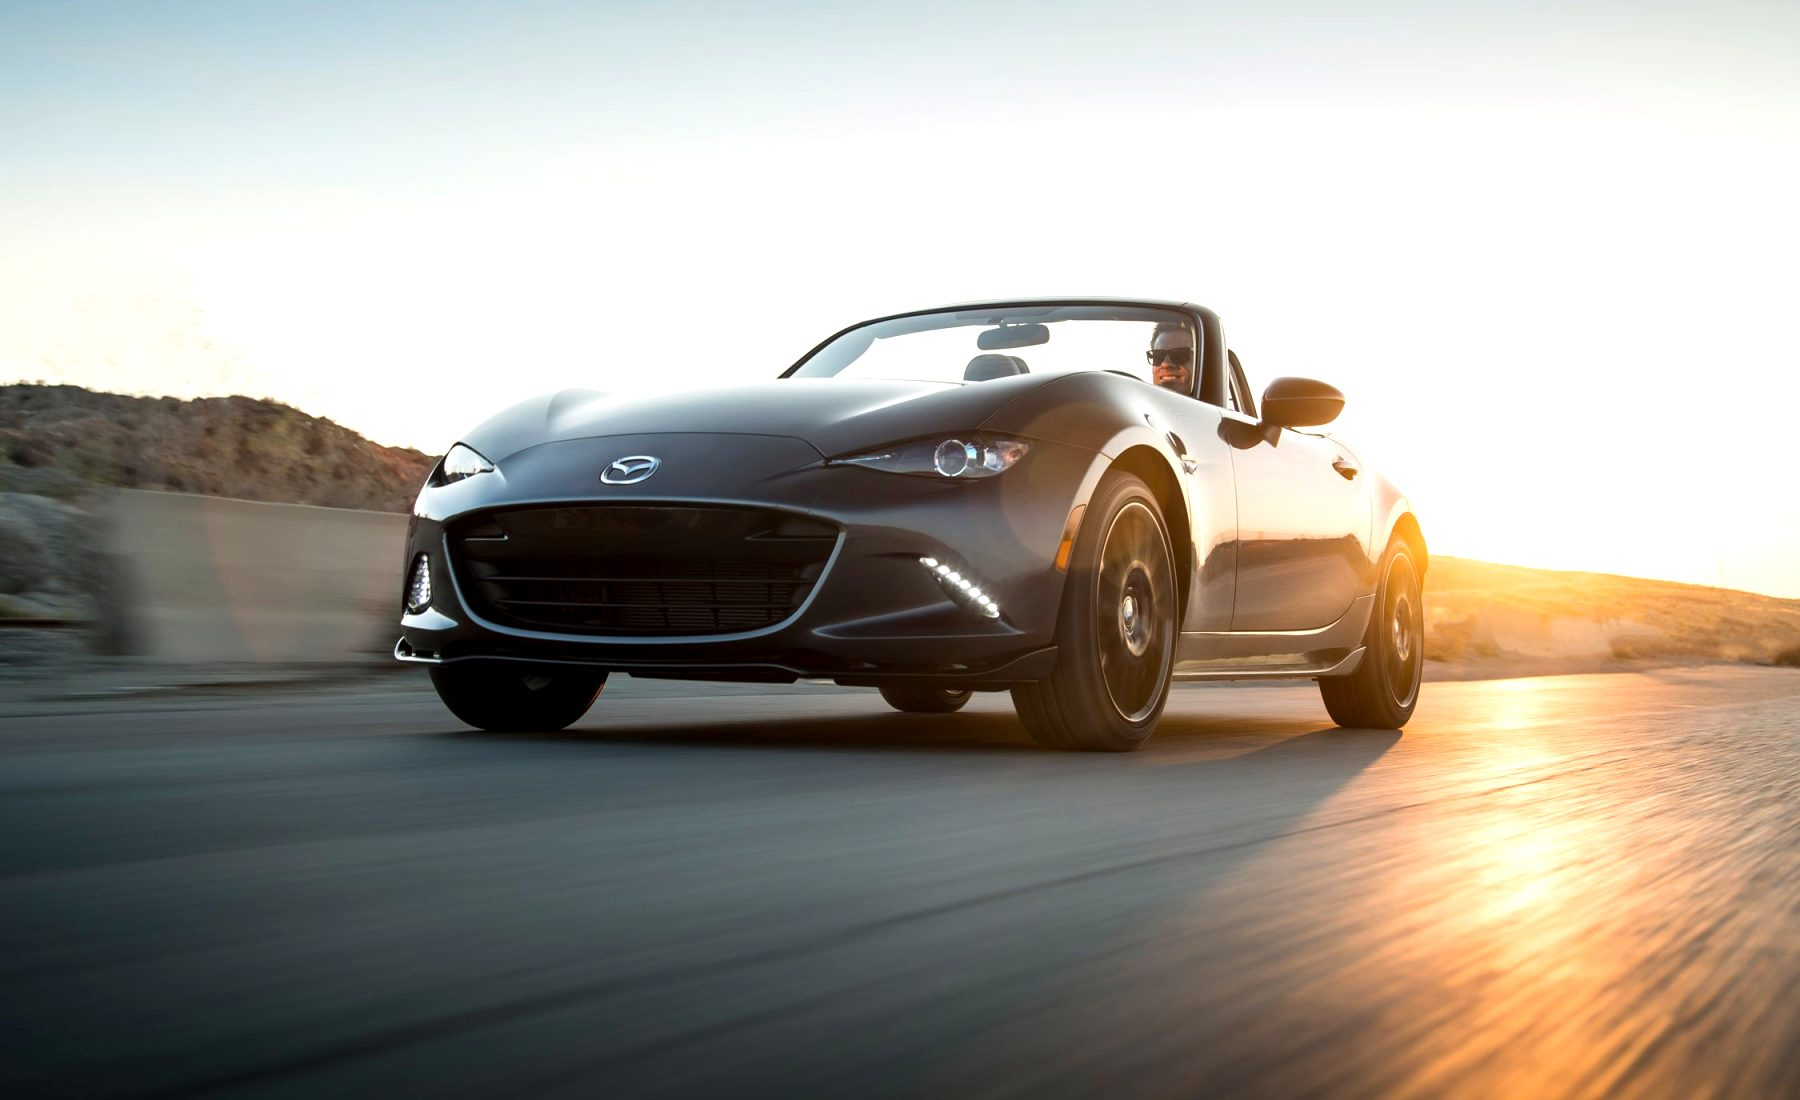 2021 mazda miata zero to 60 Wallpaper